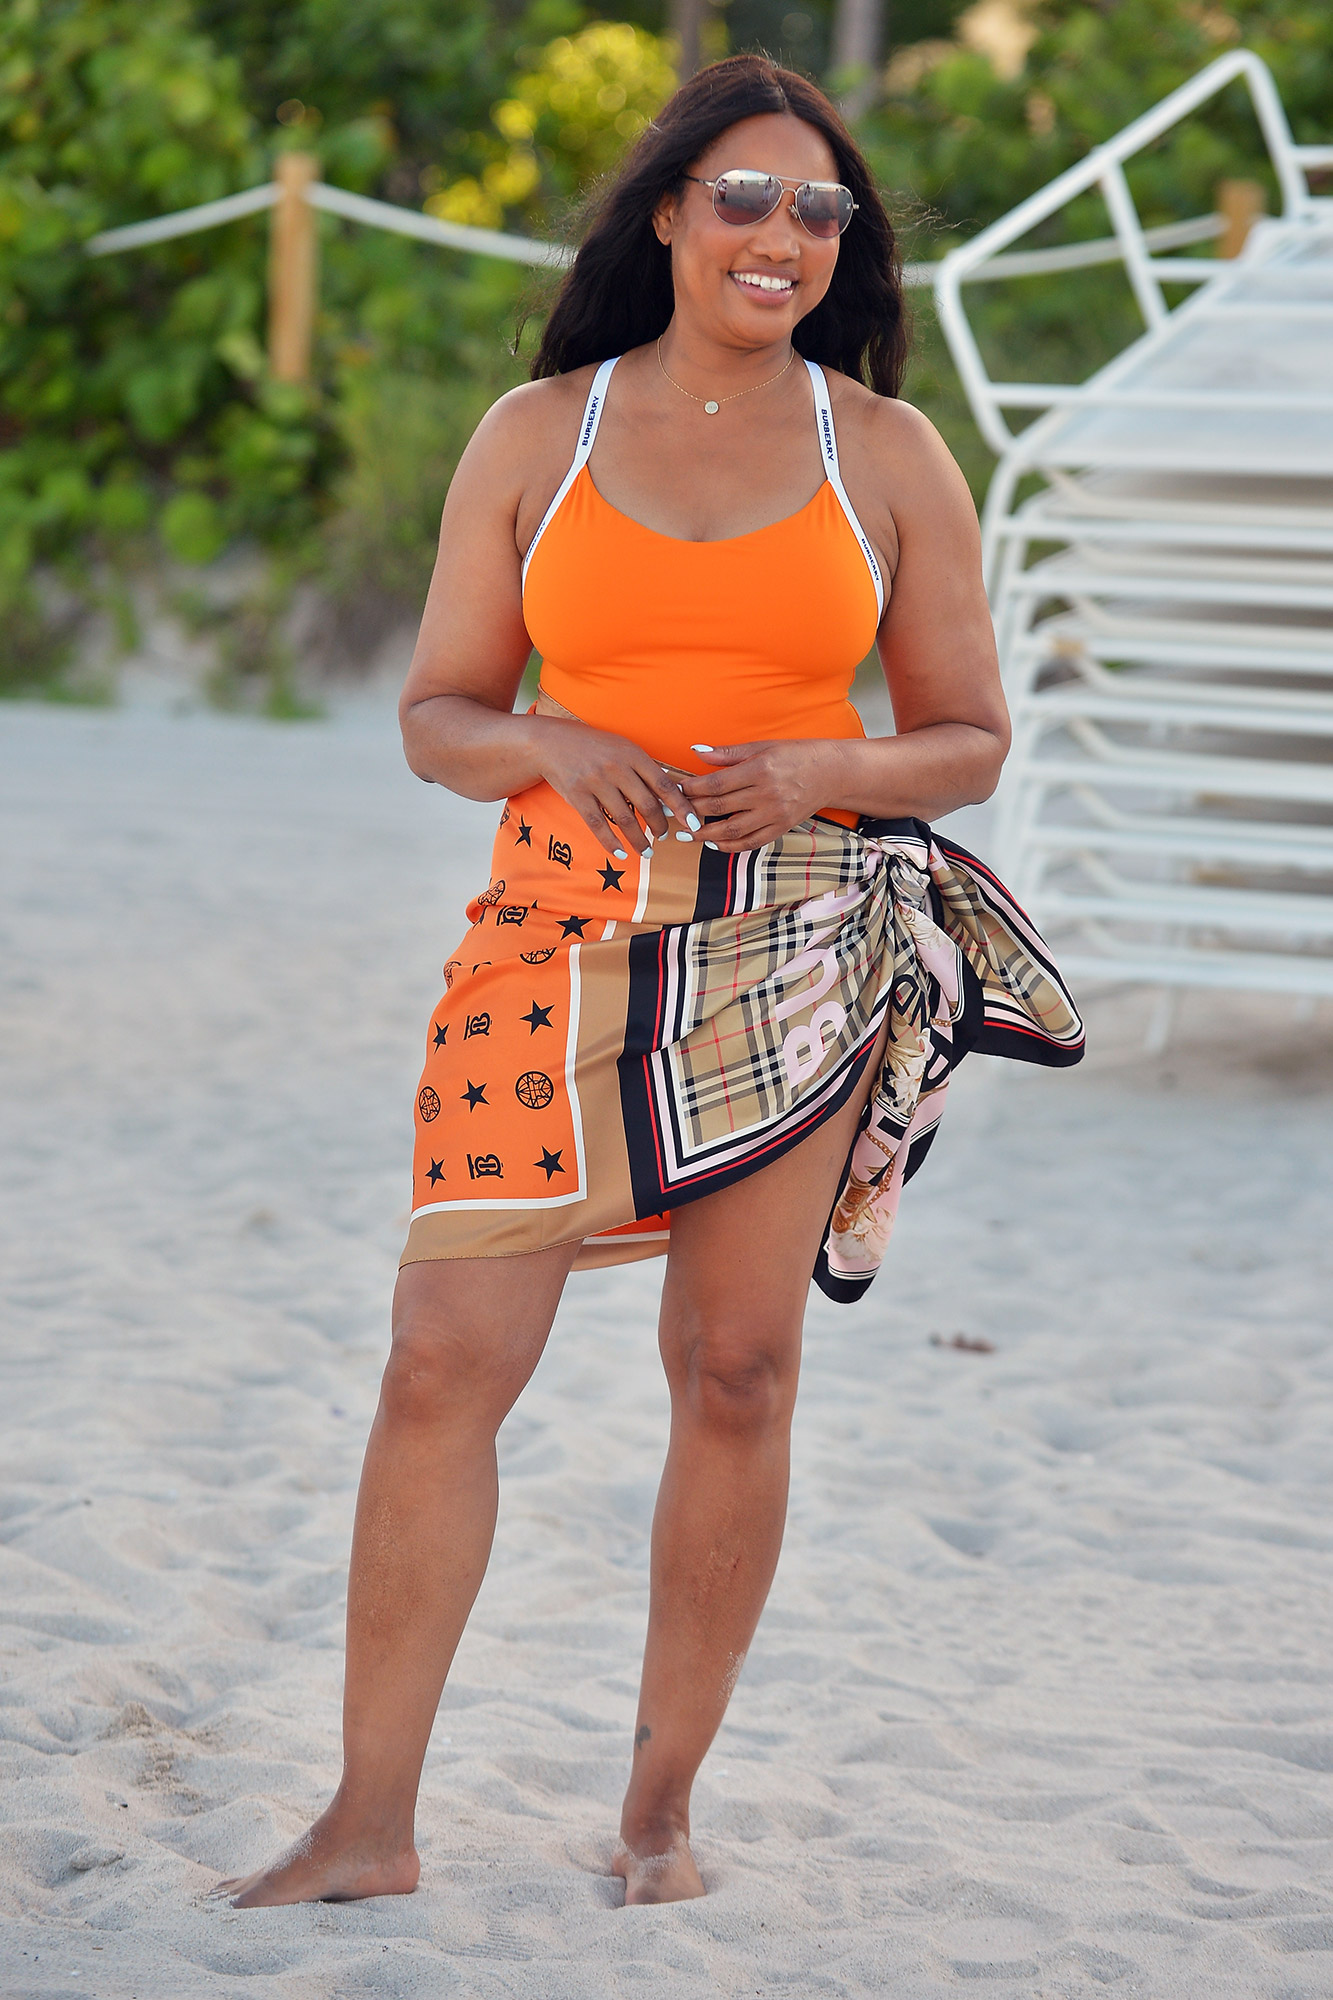 Garcelle Beauvais is seen at the beach on July 16, 2021 in Miami, Florida